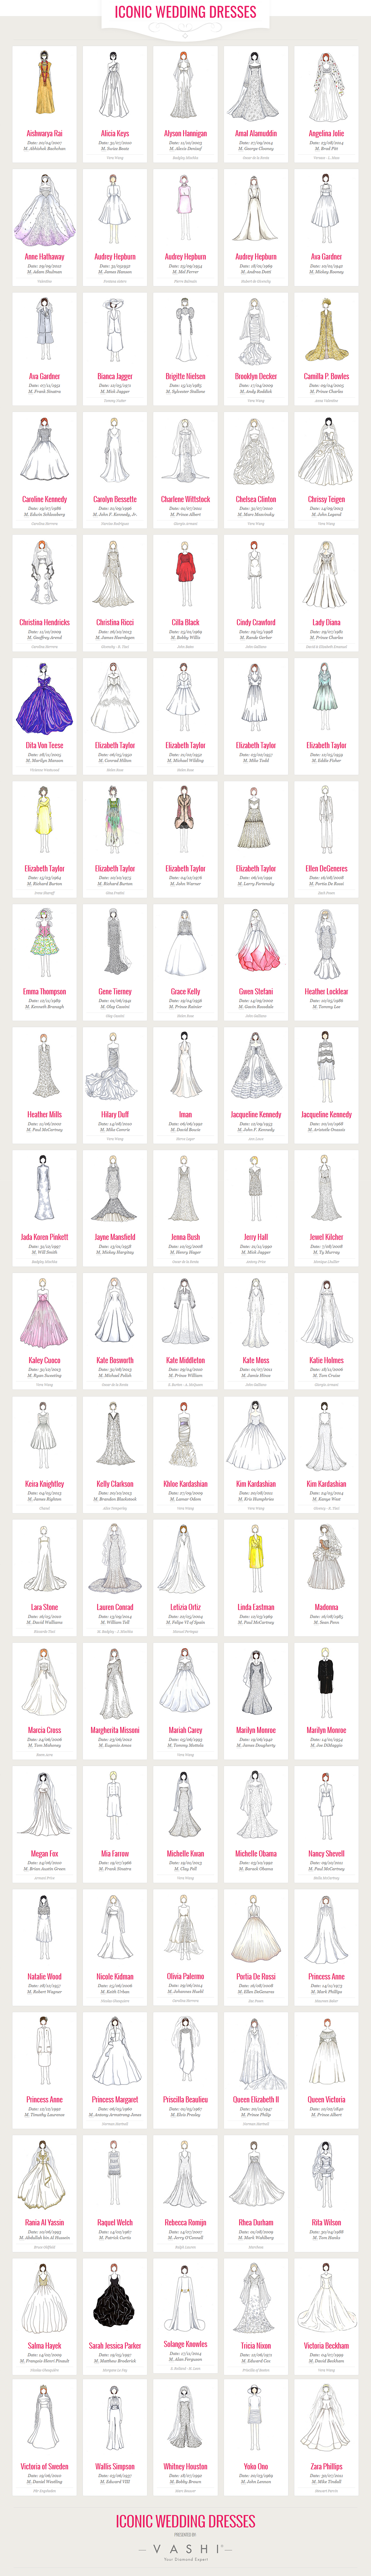 Here are of the most stylish celeb wedding gowns ever zara